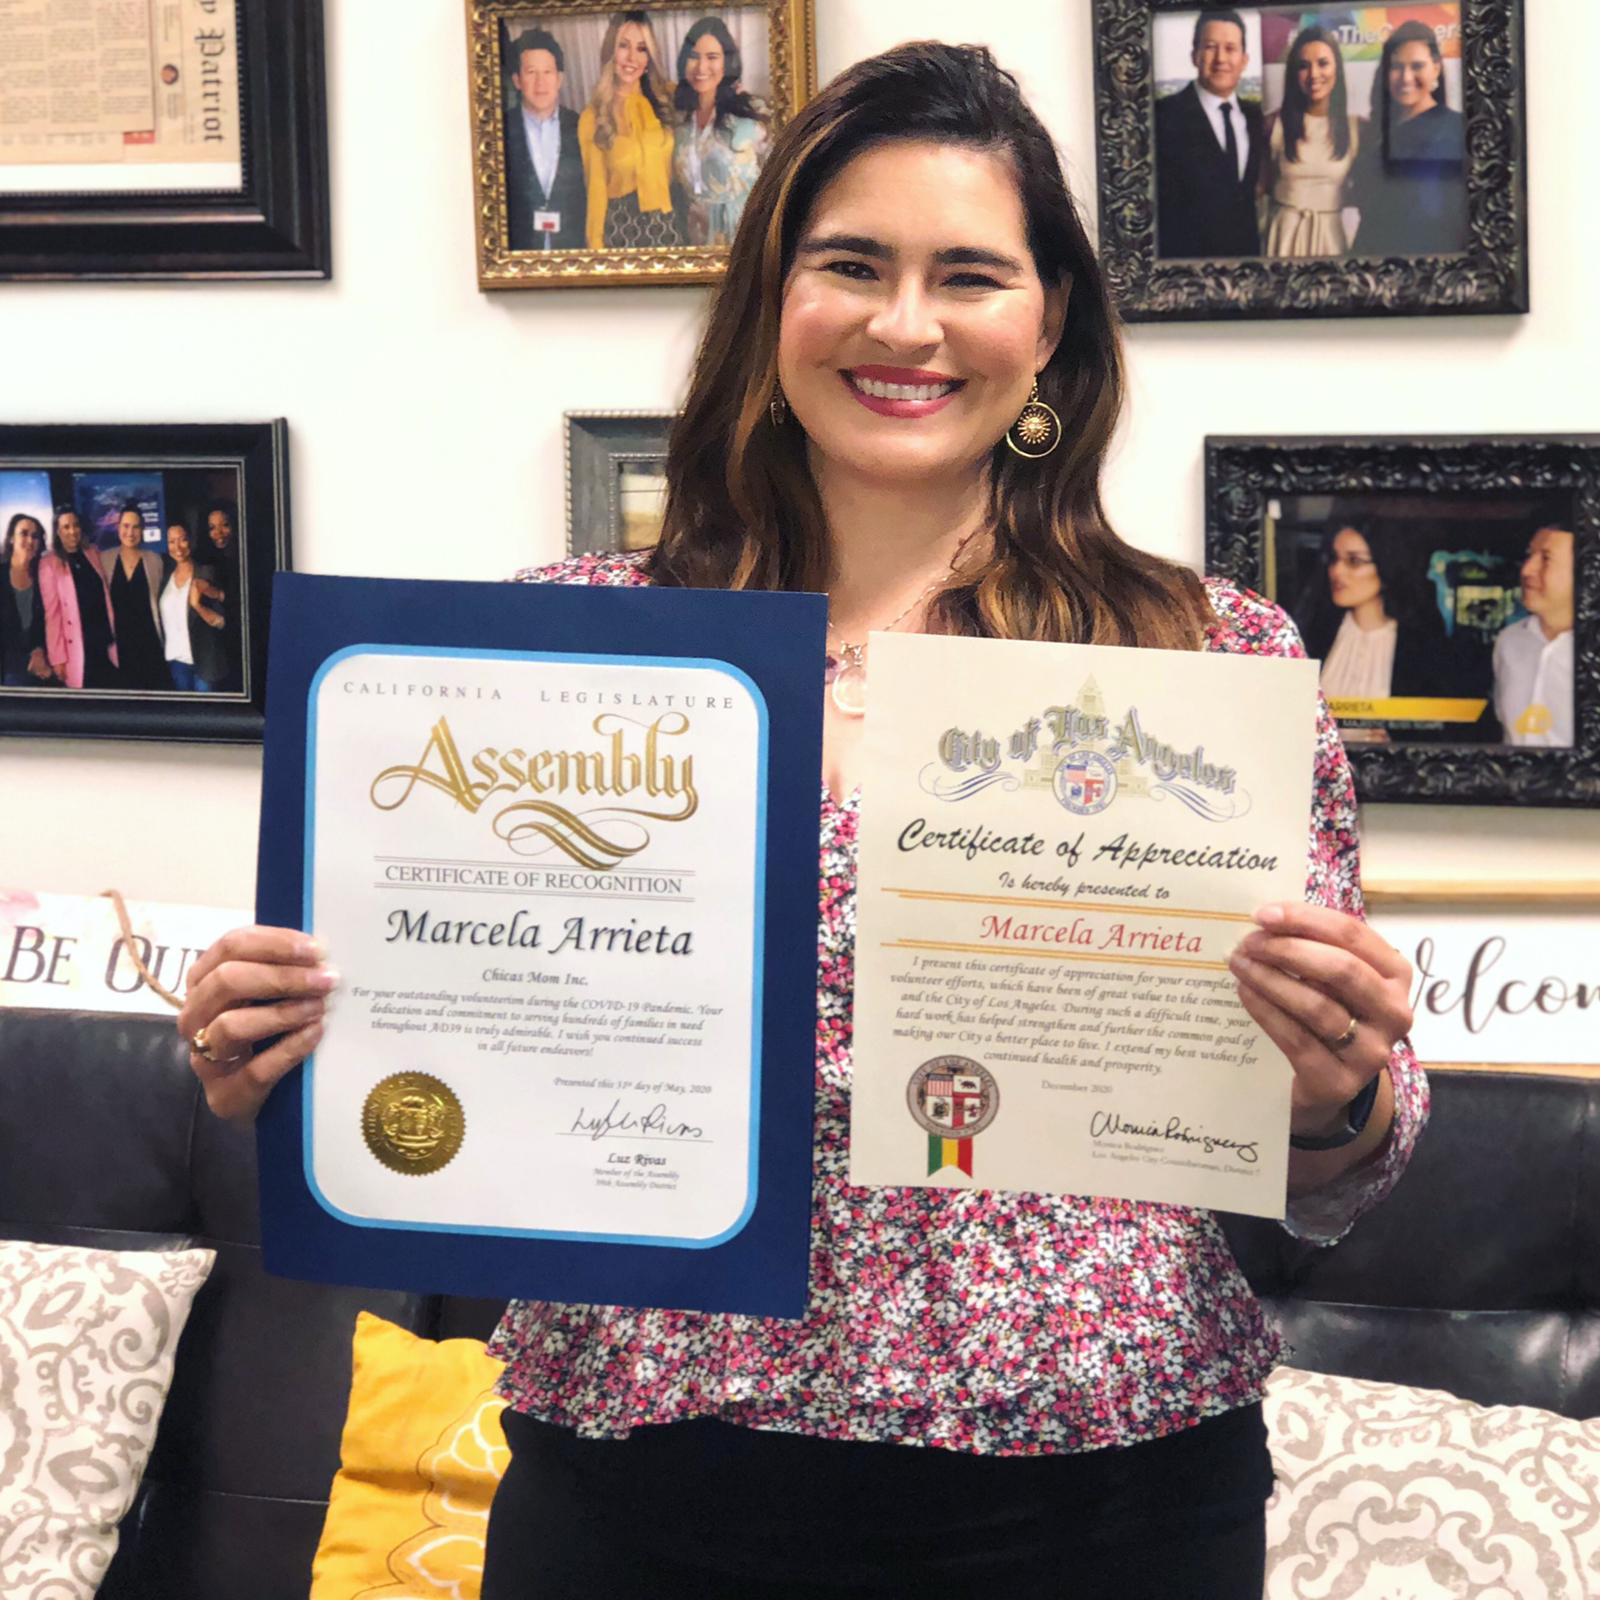 Marcela Arrieta receives recognitions from the city of Los Angeles for her volunteer work during the Covid-19 pandemic